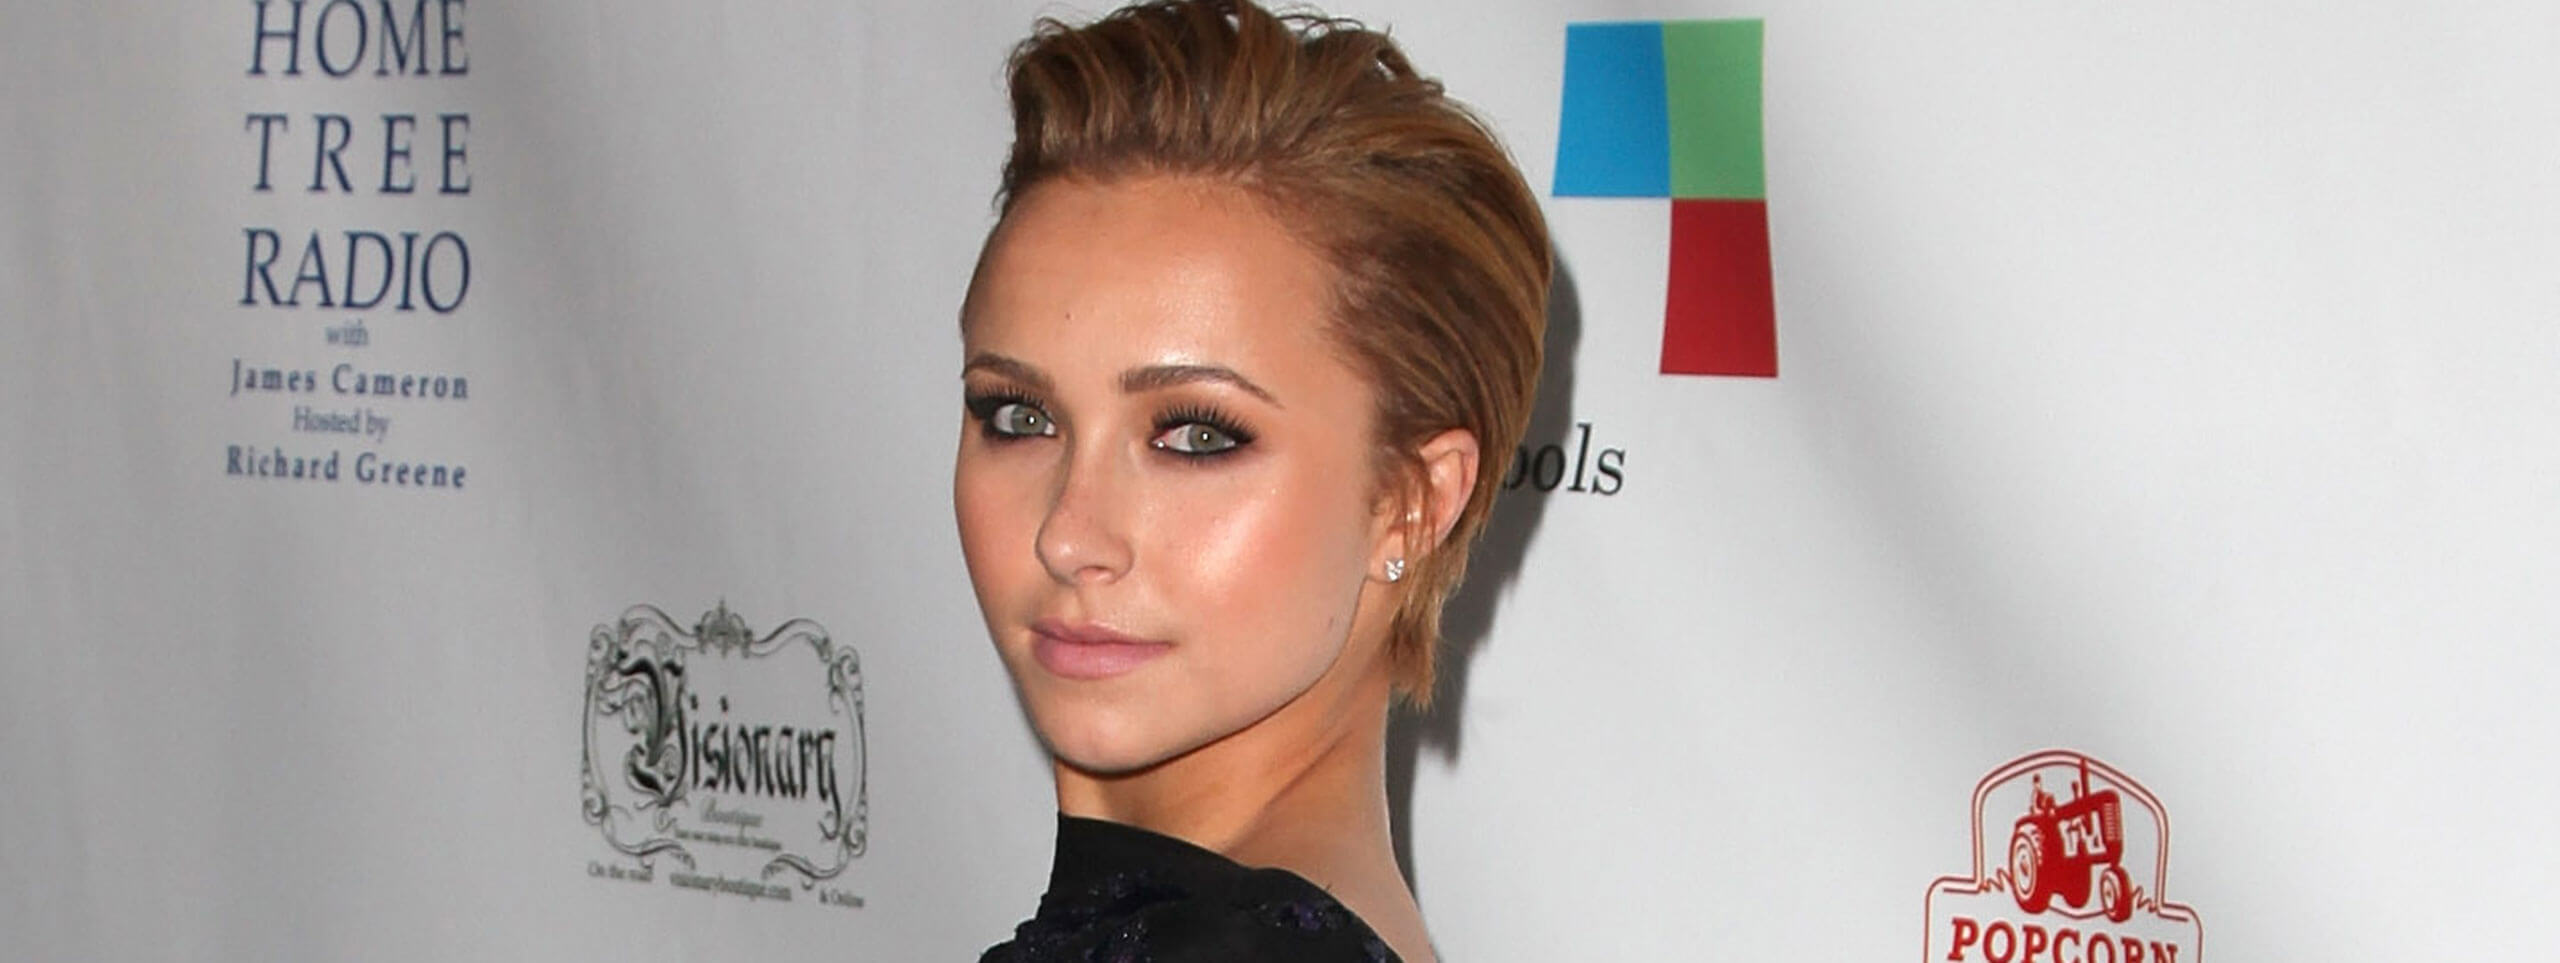 short-hair-hairstyle-hayden-panettiere